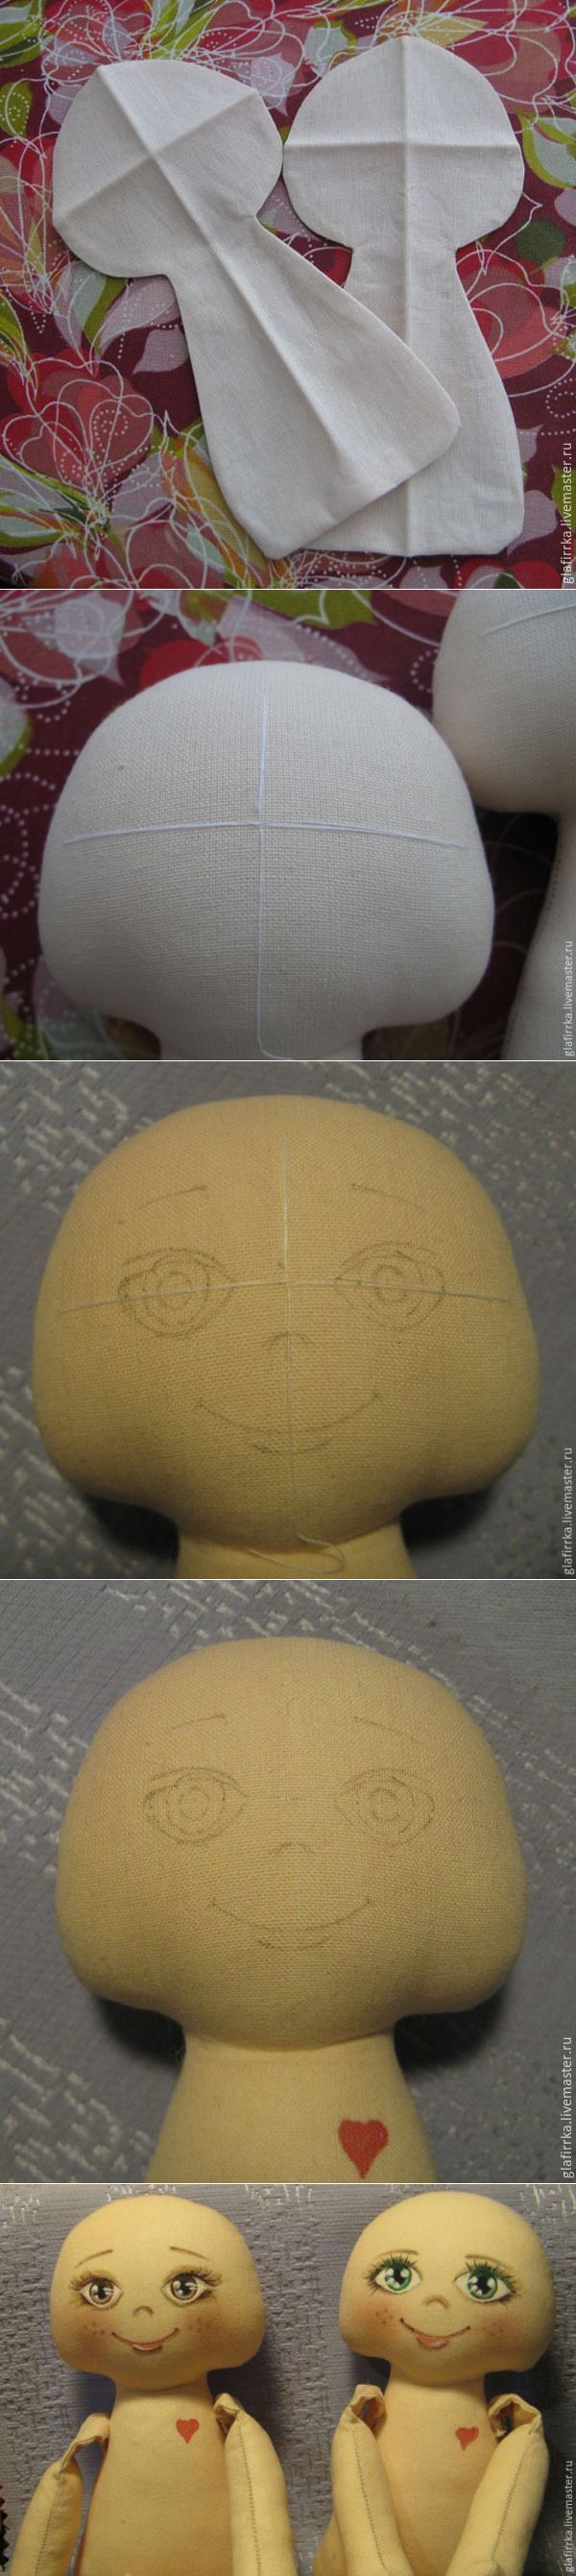 How to mark the face of the textile dolls - Fair Masters - handmade, handmade